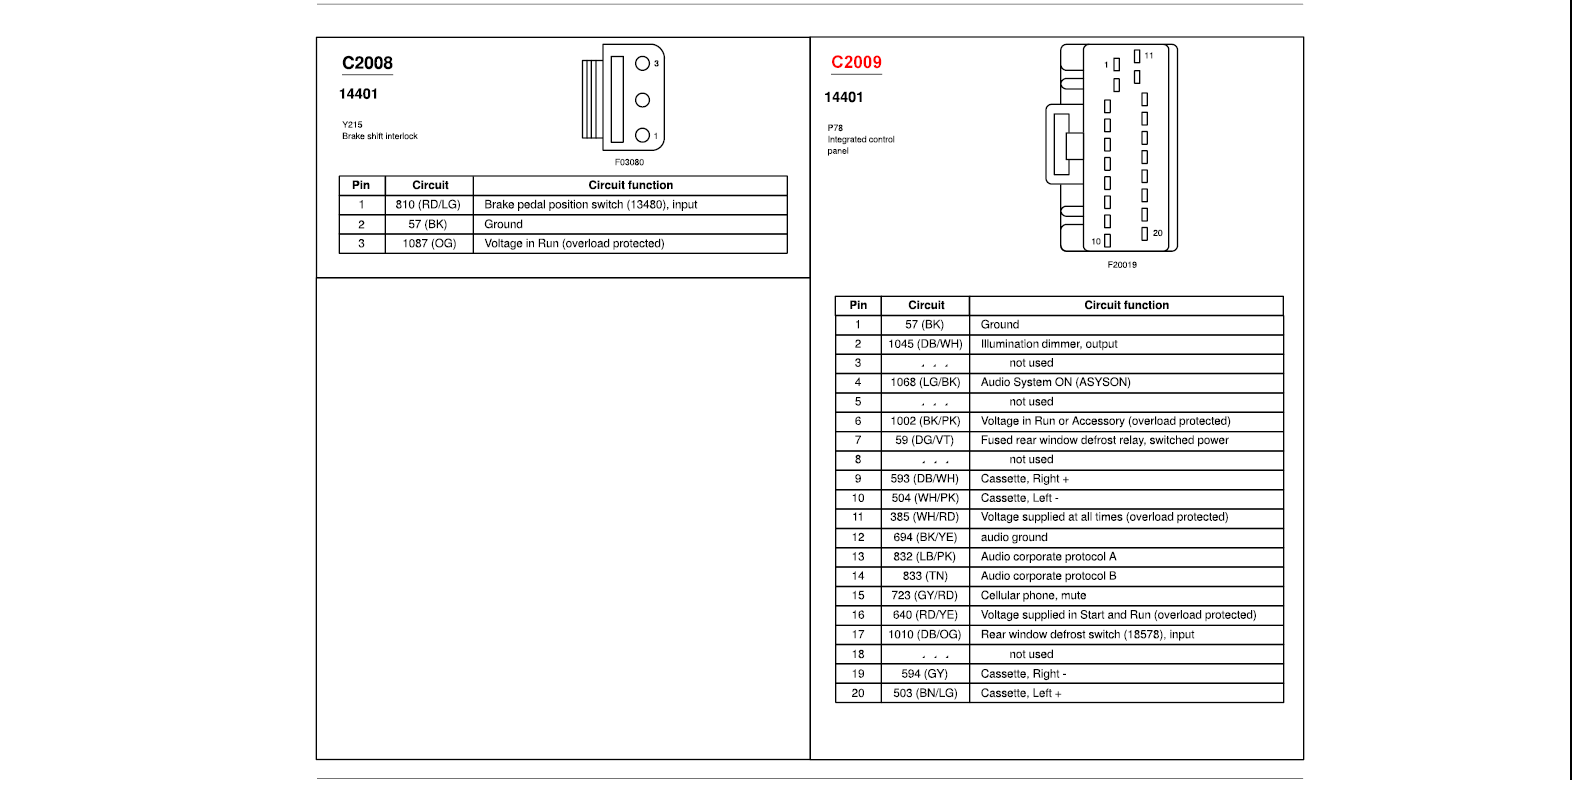 2010 12 20_023636_02_sable lincoln ls stereo wiring diagram ls engine relay box diagram 2005 Mercury Mountaineer Alternator Fuse at edmiracle.co